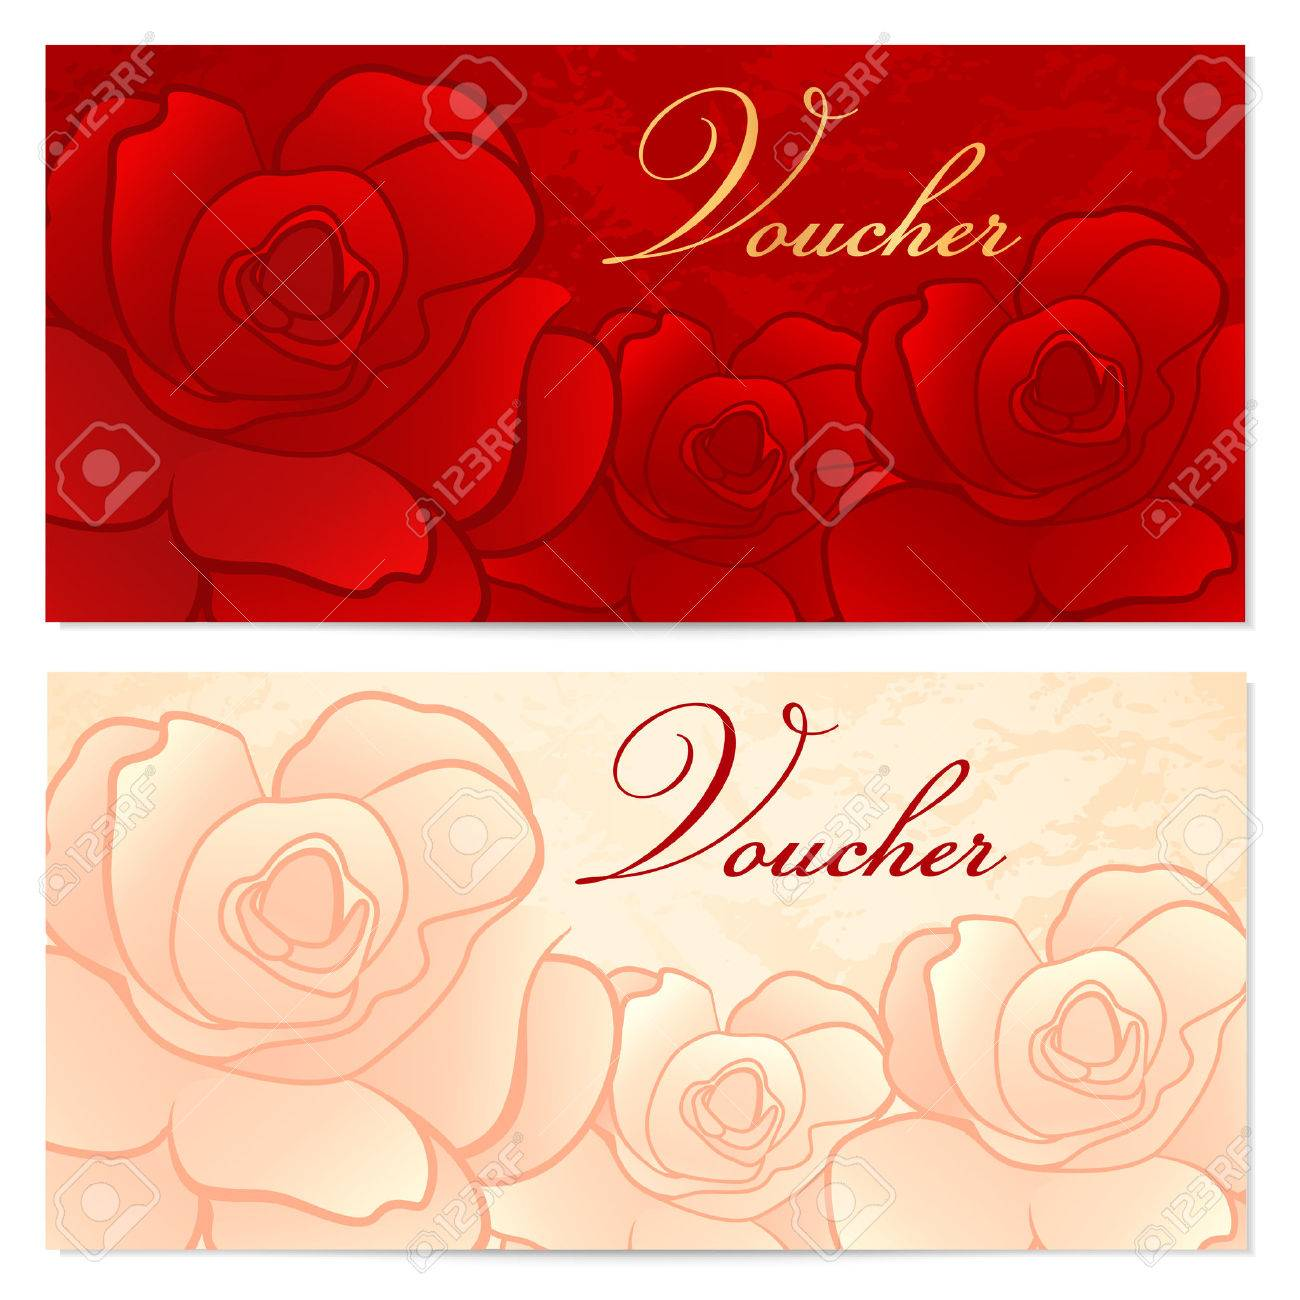 Voucher gift certificate coupon template with floral rose voucher gift certificate coupon template with floral rose pattern red background for invitation yadclub Gallery